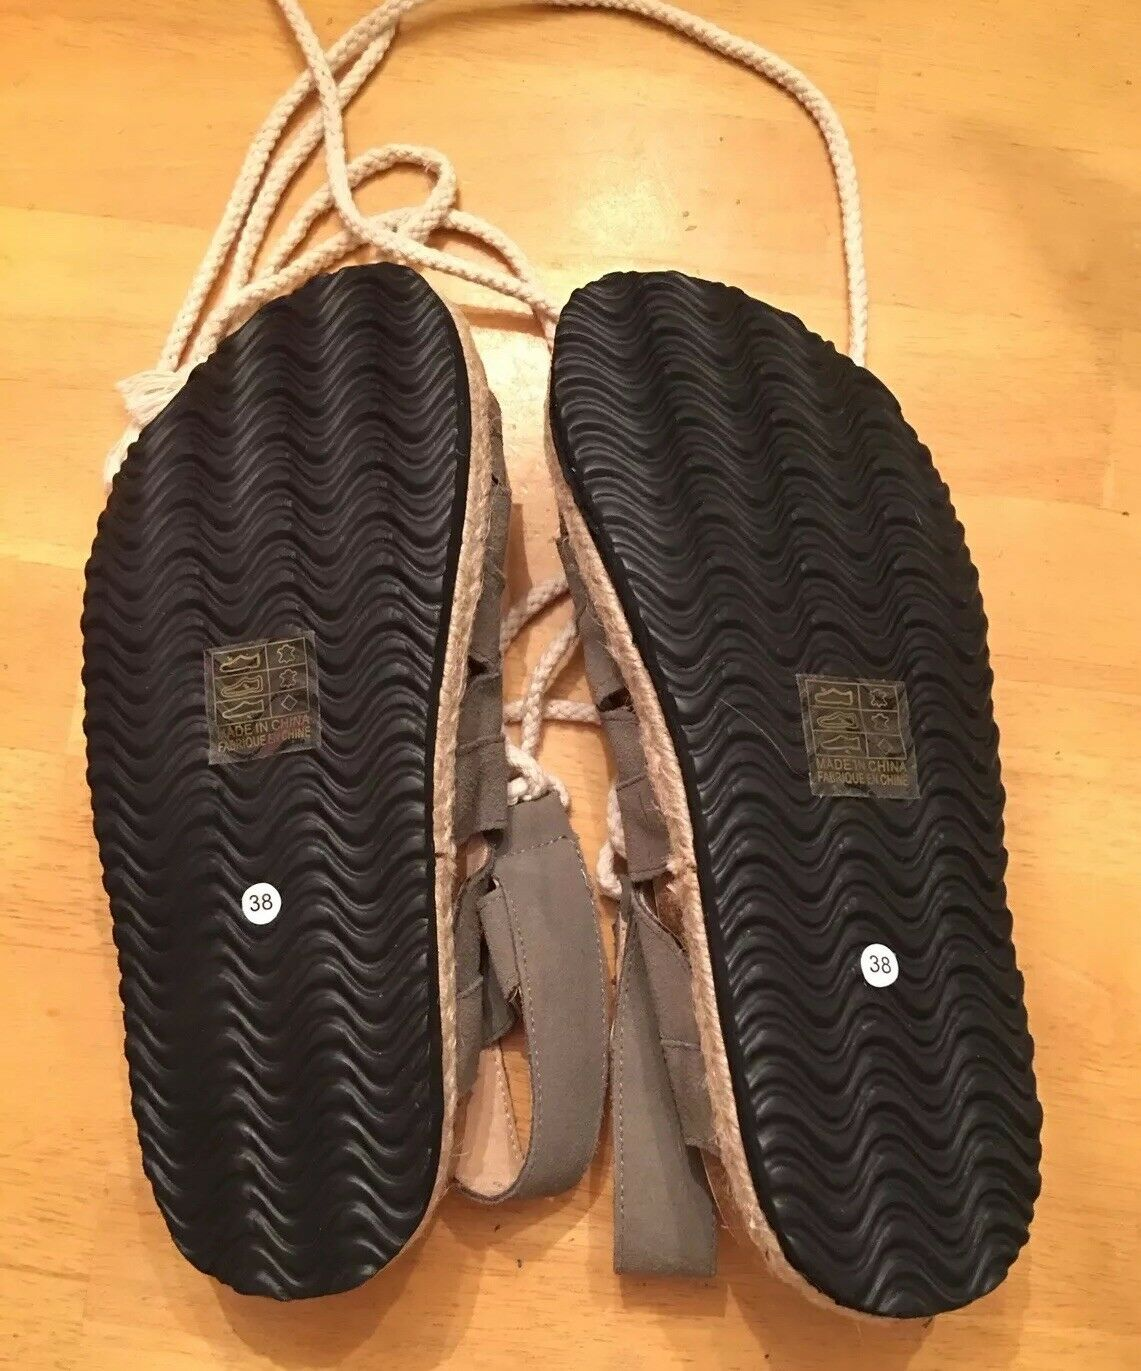 FREE FREE FREE PEOPLE  BOHO HIPPIE BIRK STYLE LACE UP SANDALS Dimensione  38 NWOB KHAKI verde 9bfb8b